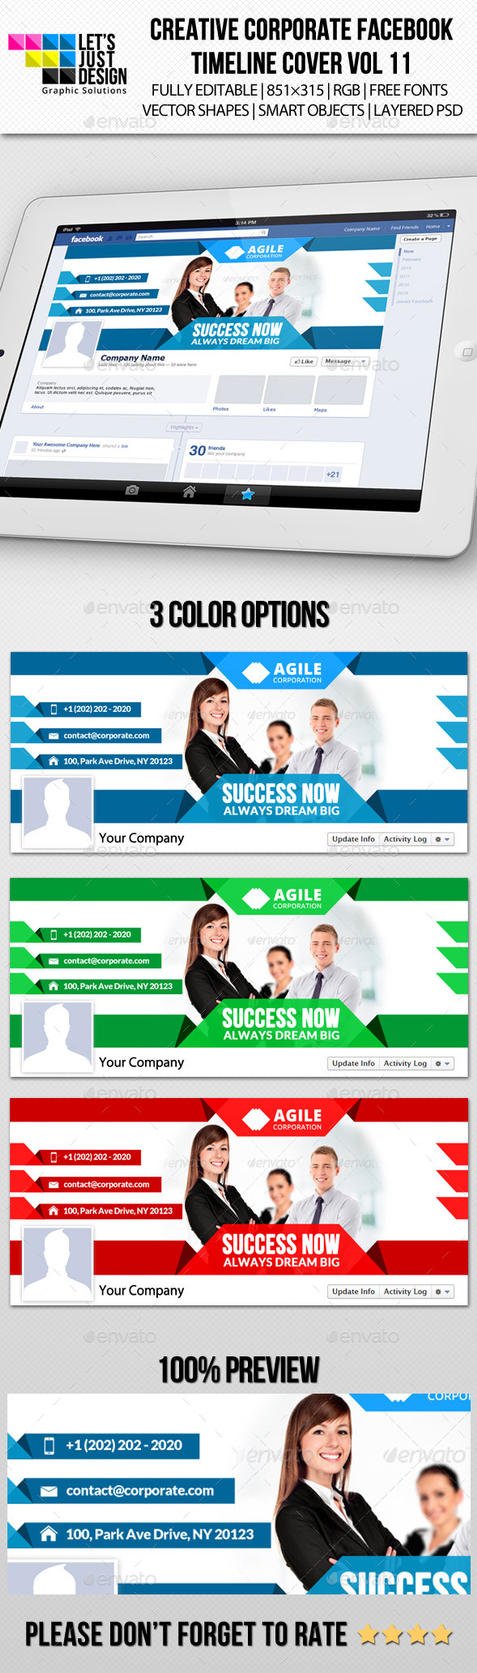 Creative Corporate Facebook Timeline Cover Vol 11 by jasonmendes